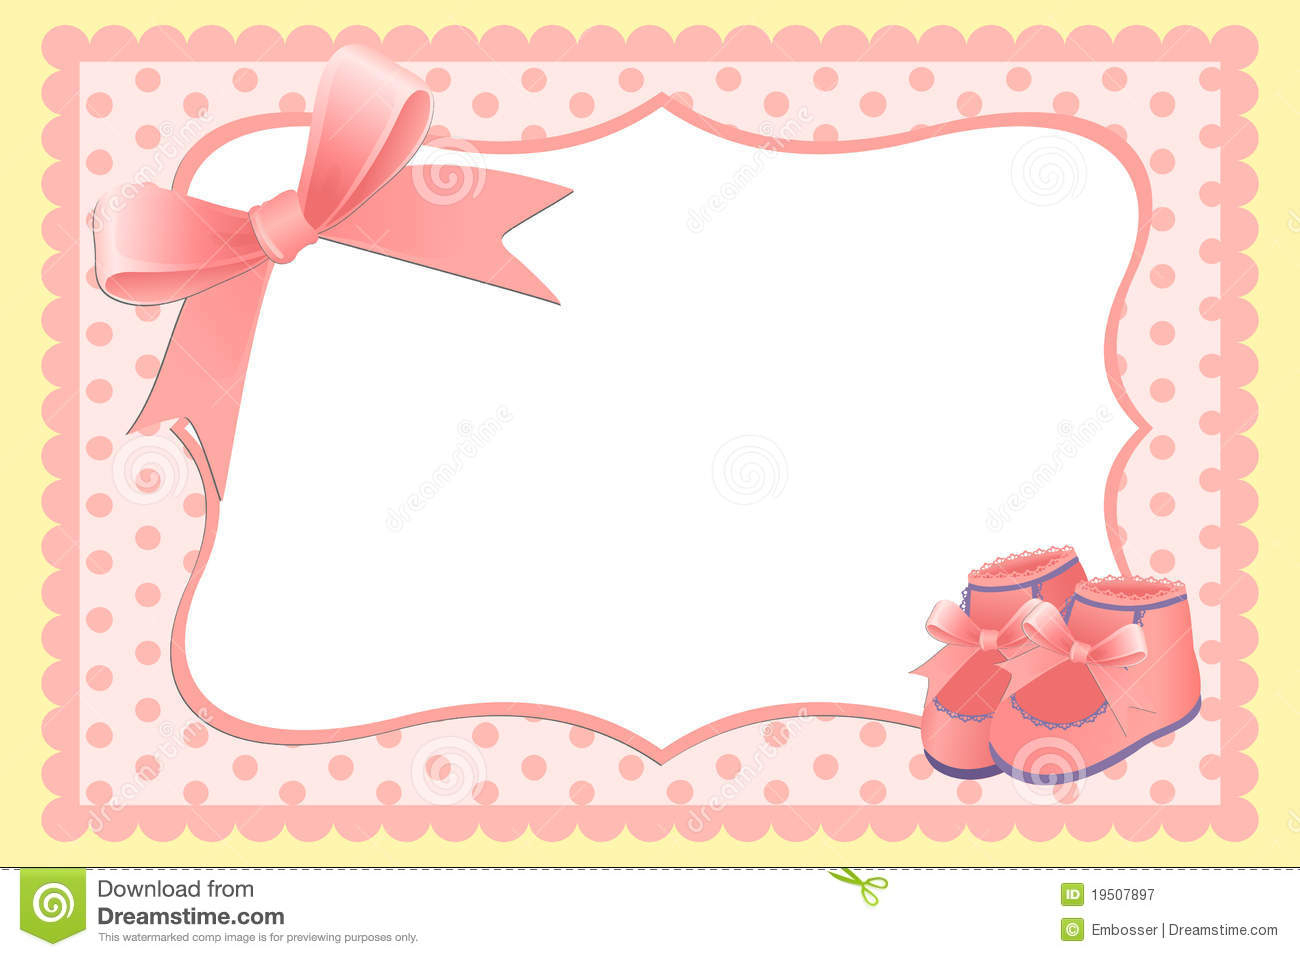 001 Template Ideas Free Printable Baby Cards Templates Cute S Card - Free Printable Baby Cards Templates